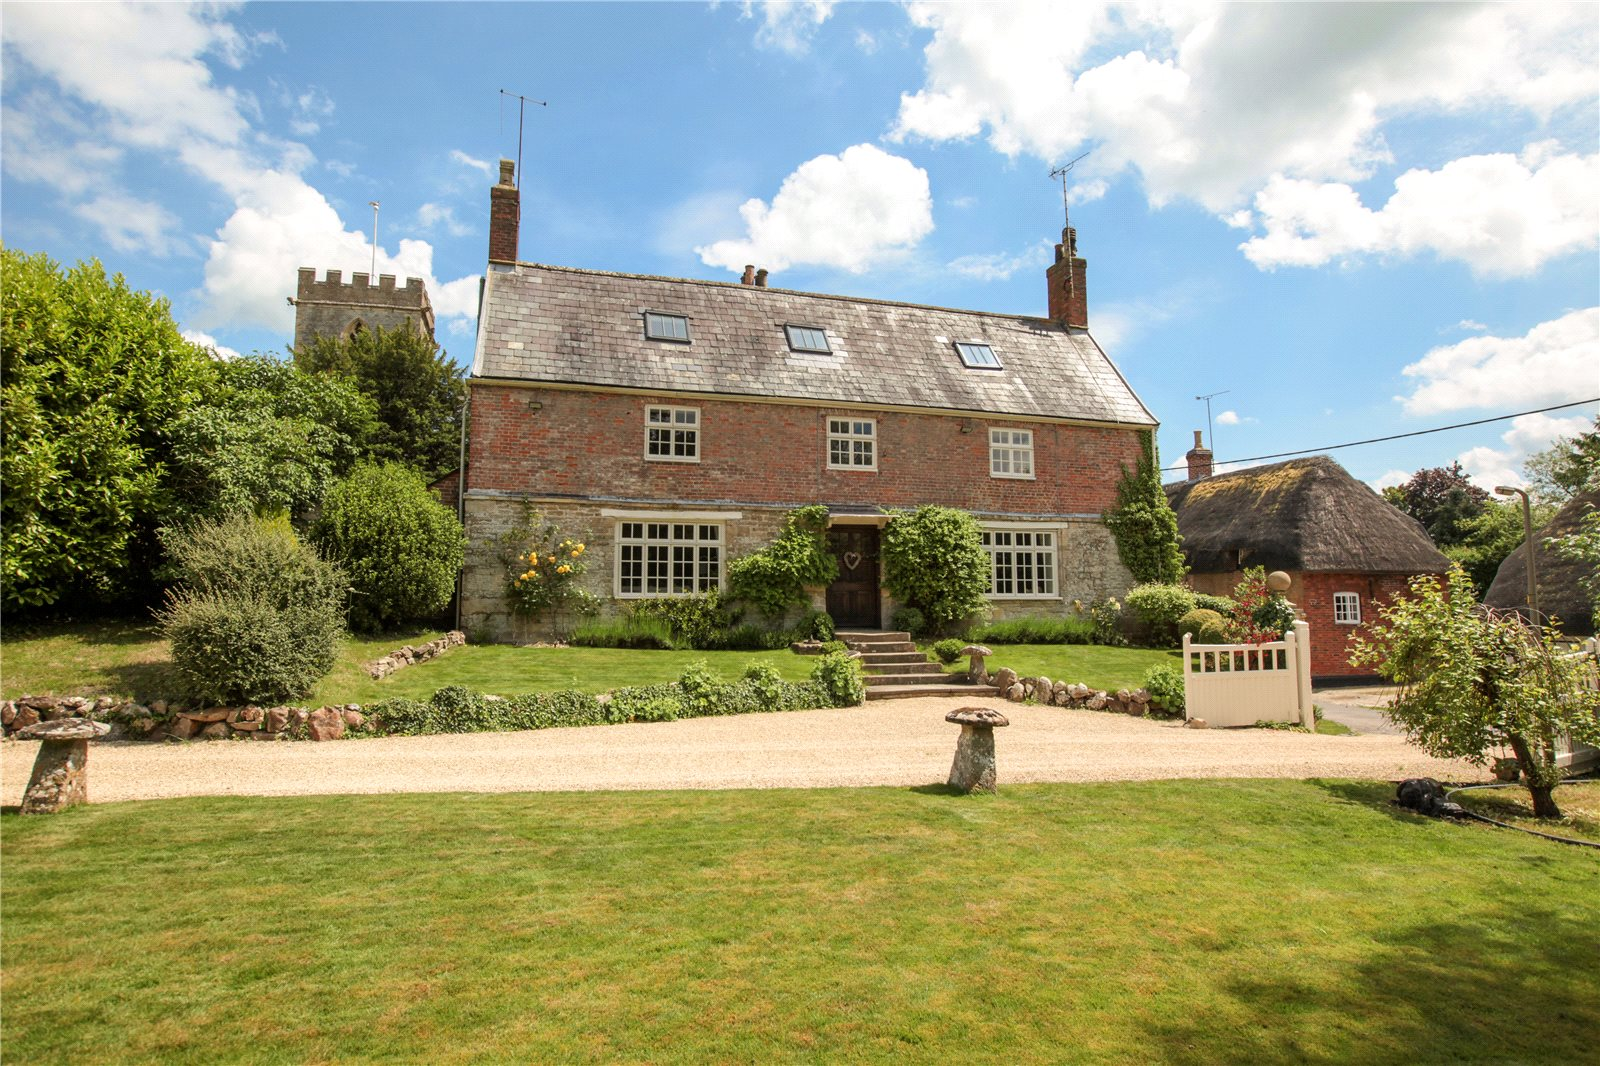 Won the lotto? This £1.8m house could be the one for you (and it's in Chiseldon!)